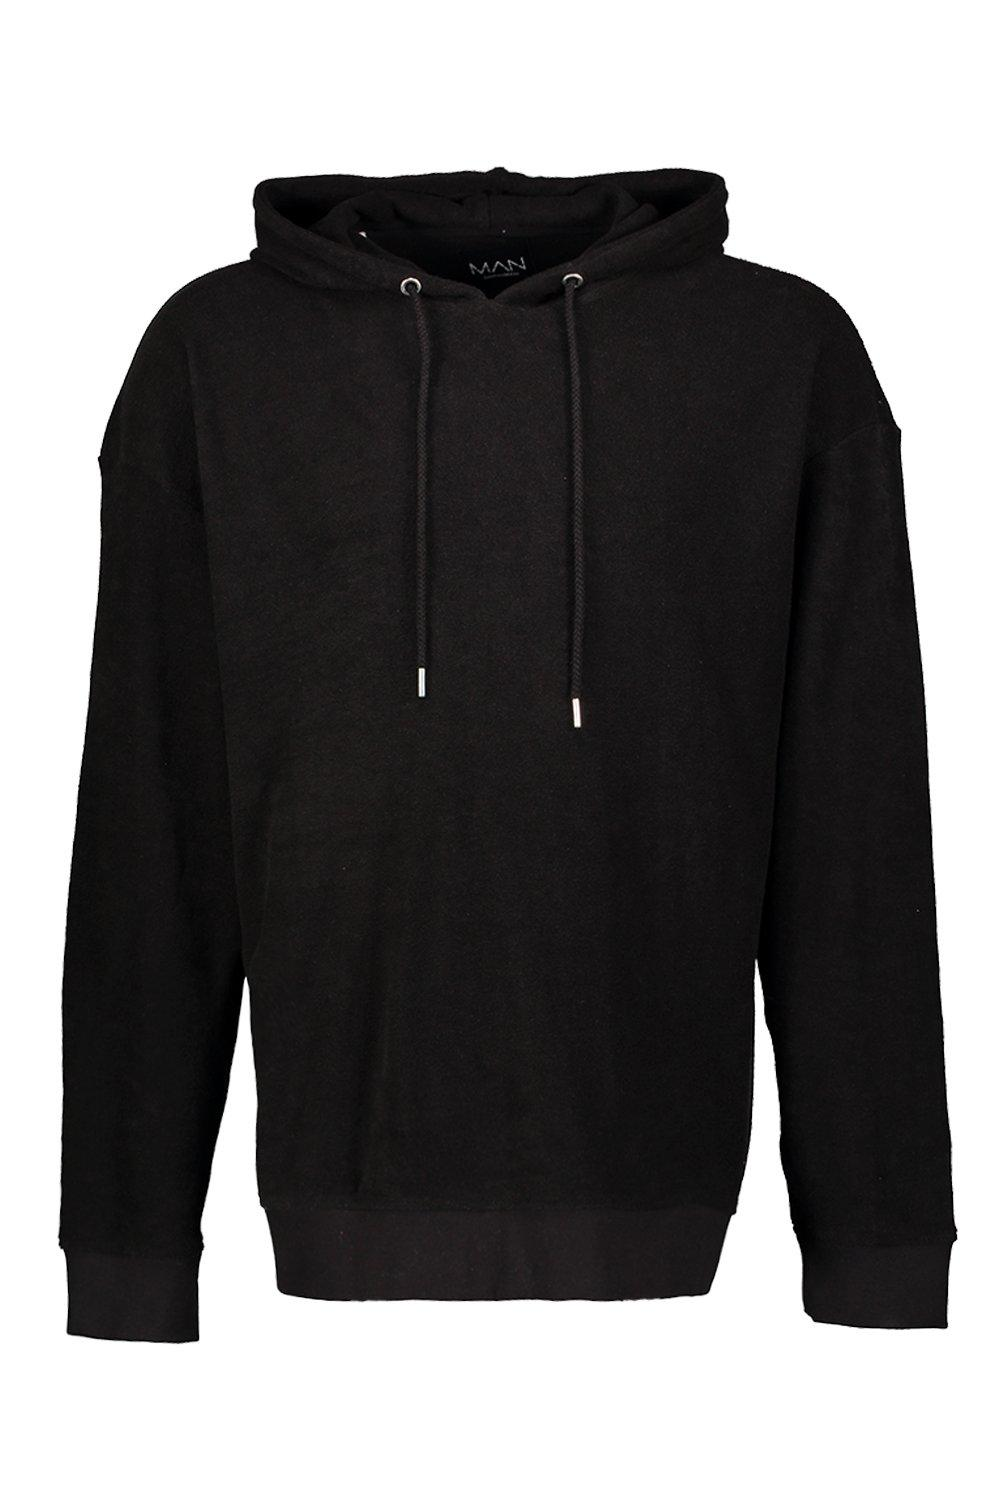 boohooMAN black Oversized Over The Head Towelling Hoodie